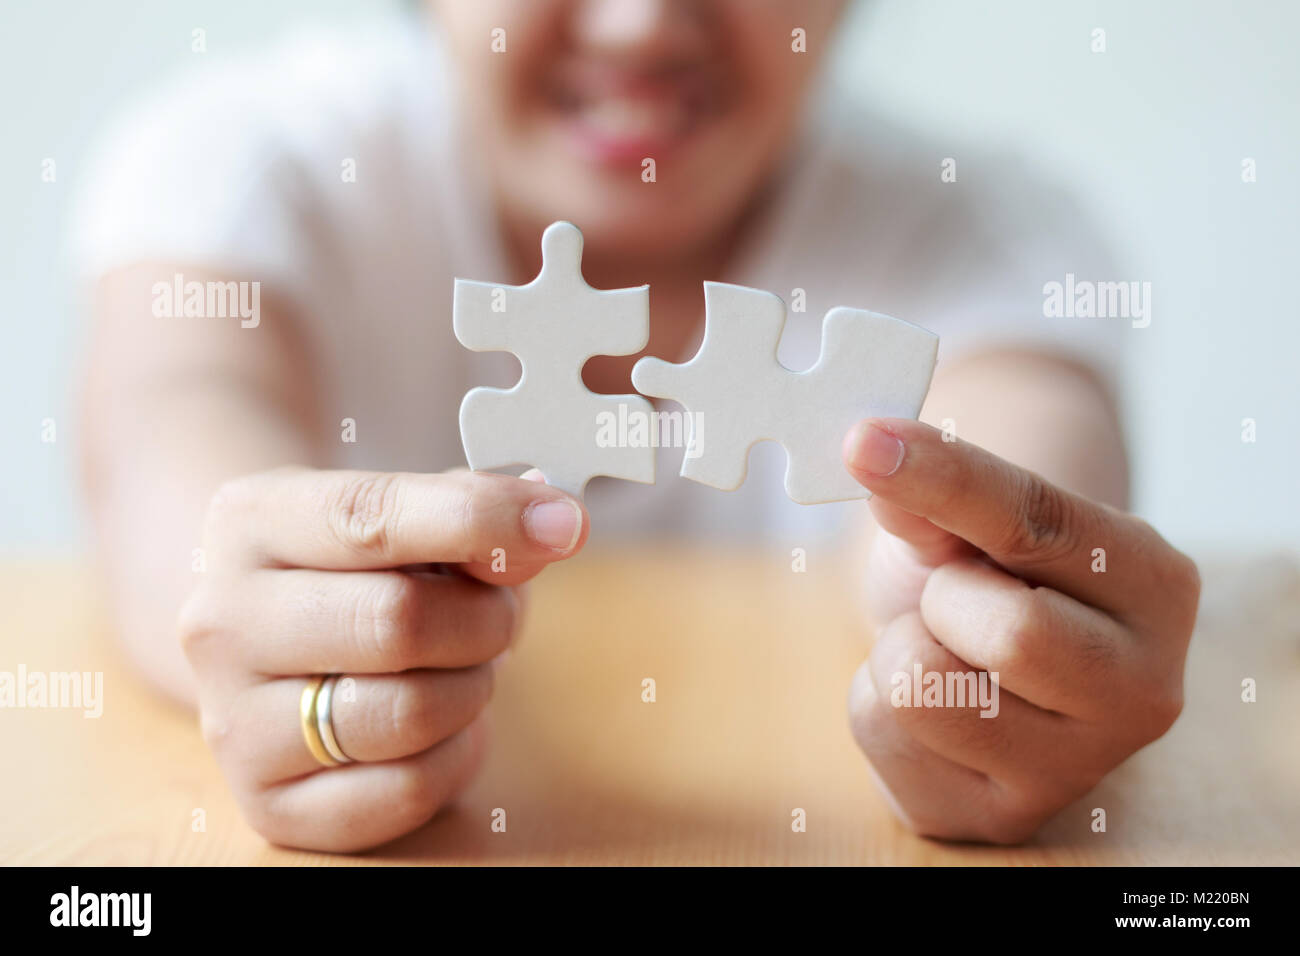 Asian woman jointing jigsaw puzzle shallow depth of field select focus on hands - Stock Image